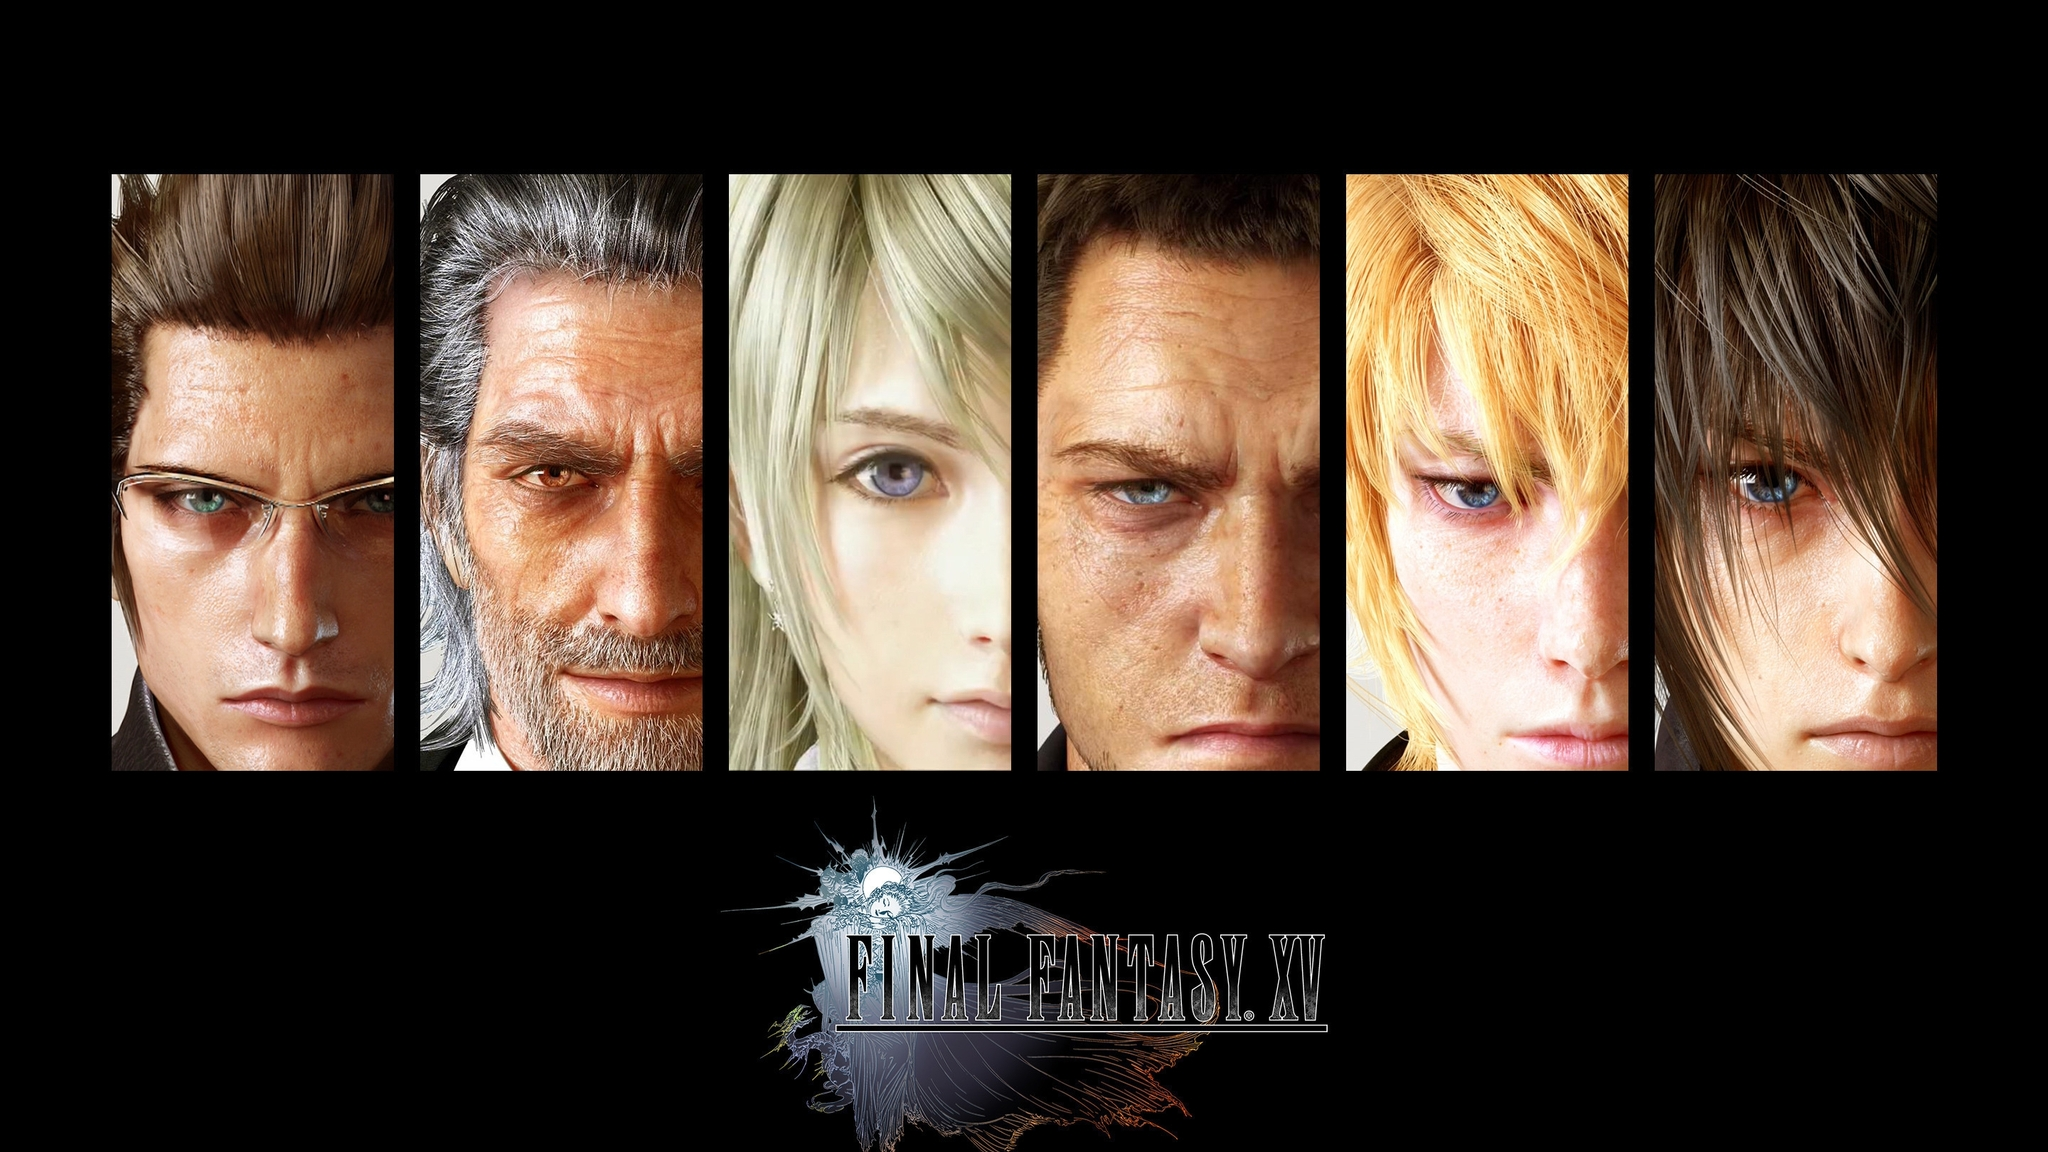 final-fantasy-xv-game-poster.jpg